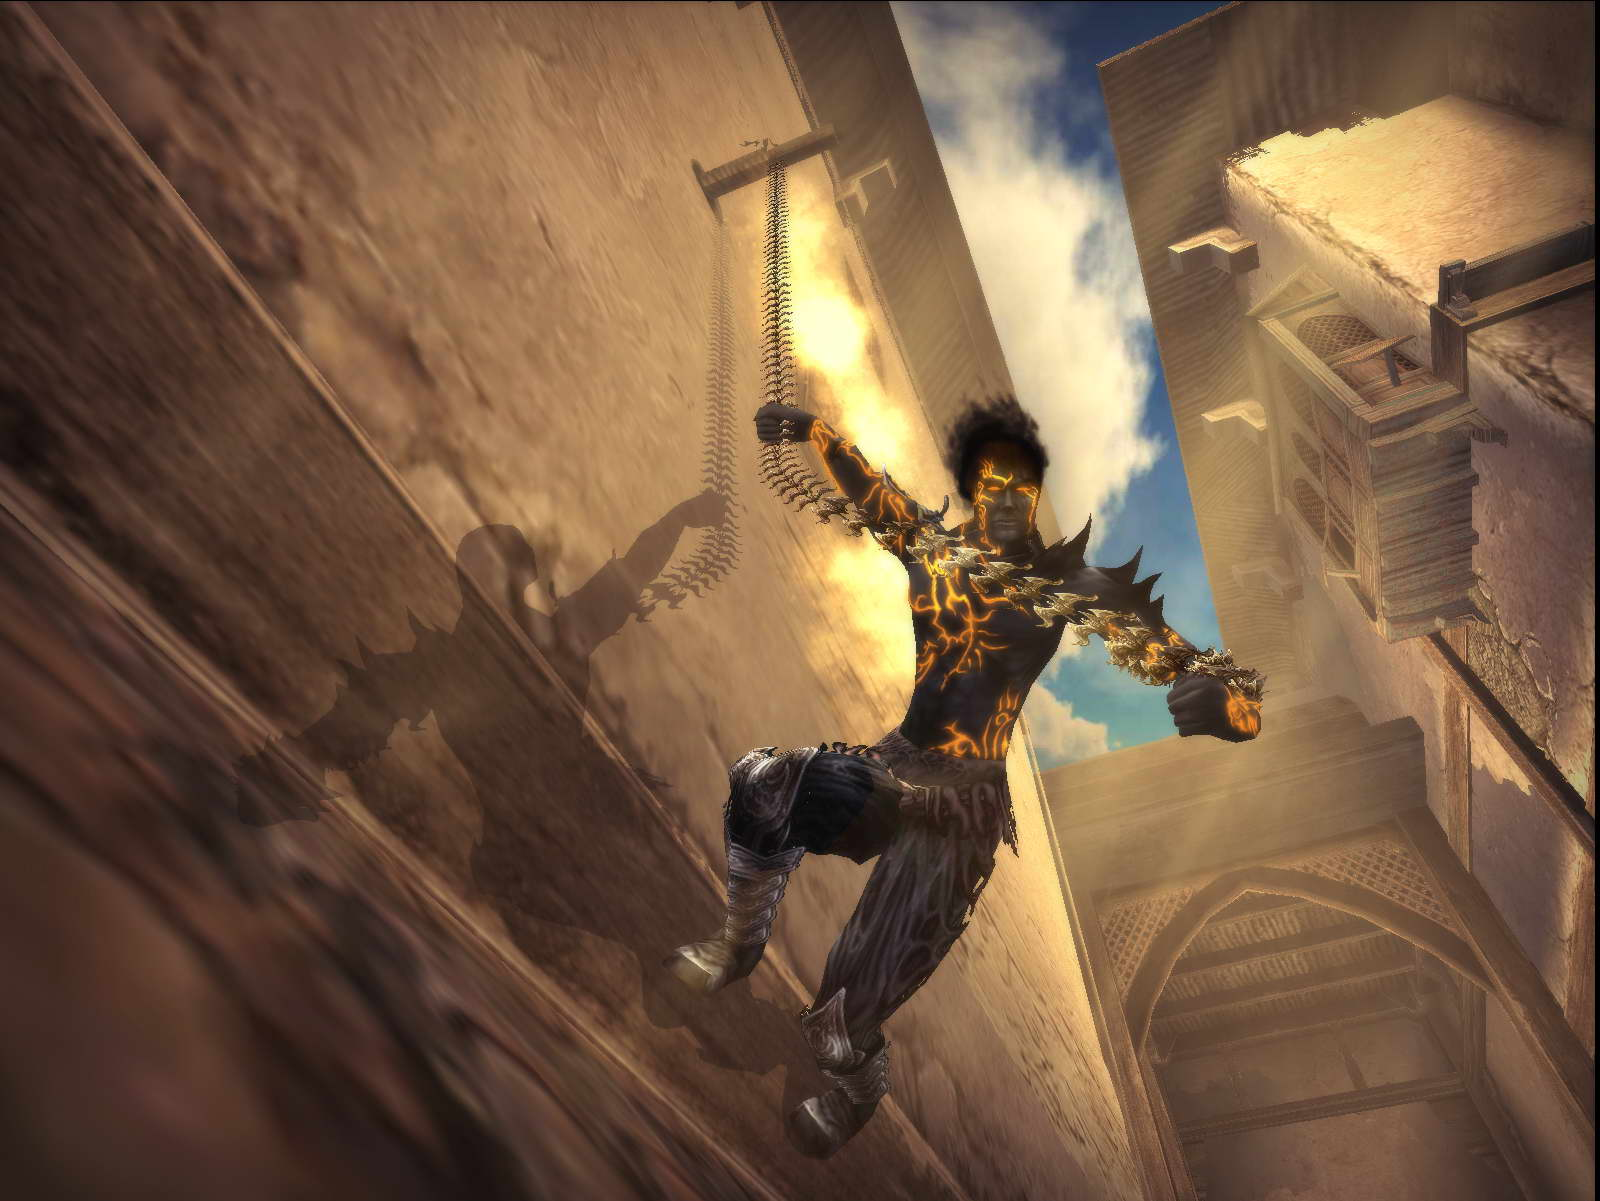 Prince of persia two of thrones hot  hentia pic